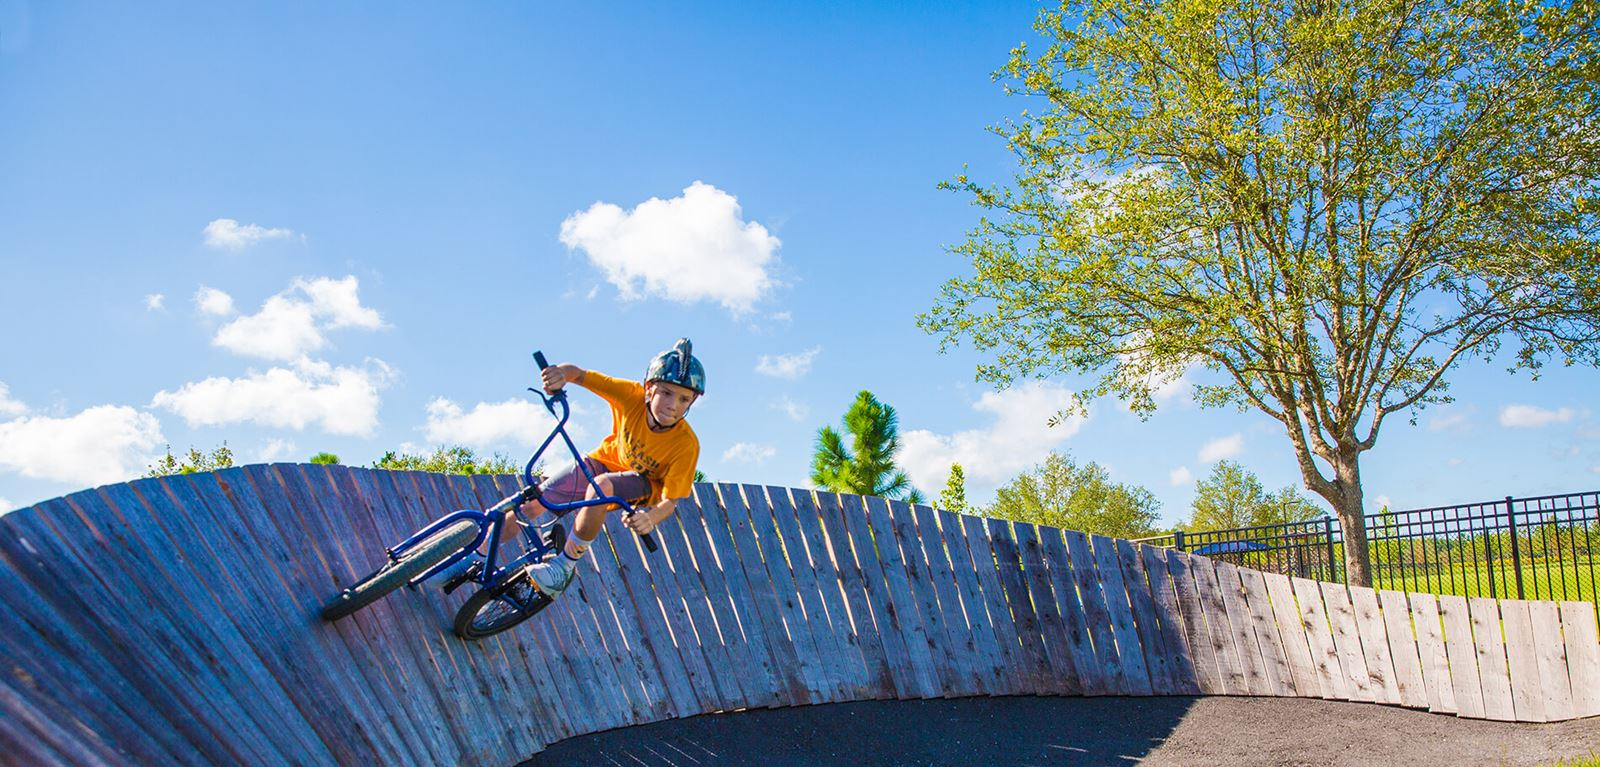 Kid on bike ramp at BMX park in Bexley.